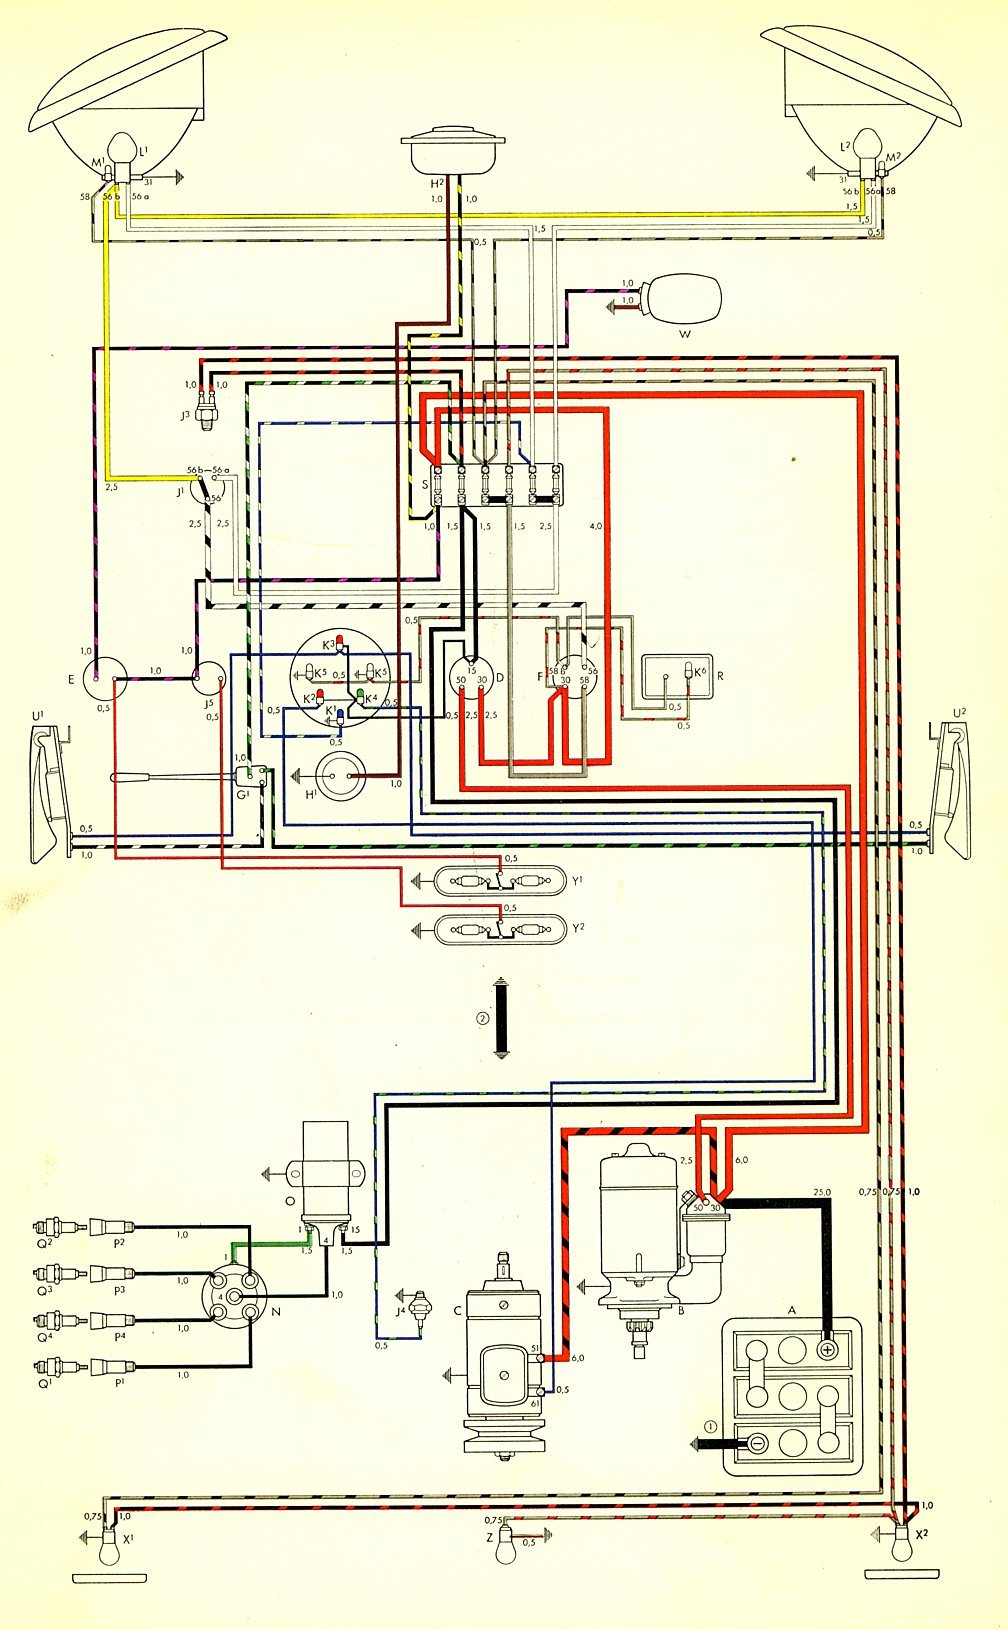 Wiring Diagram For 1966 Vw Beetle Libraries 80 Ford Bronco Diagrams Bus Third Levelvw Simple